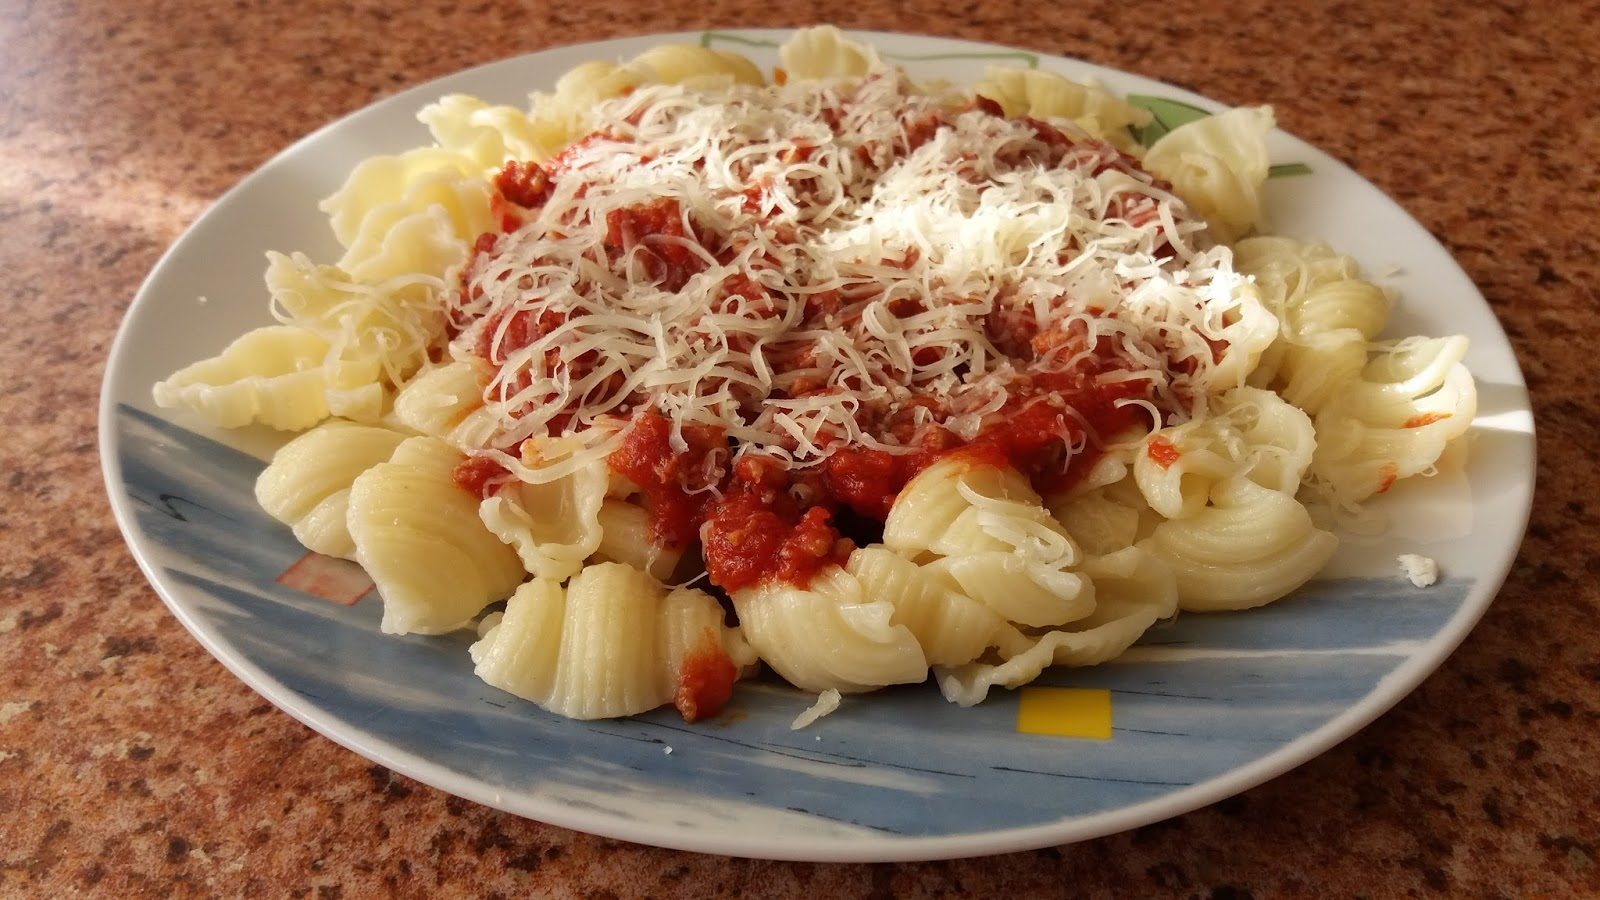 PASTA WITH TOMATO SAUCE AND MINCED MEAT